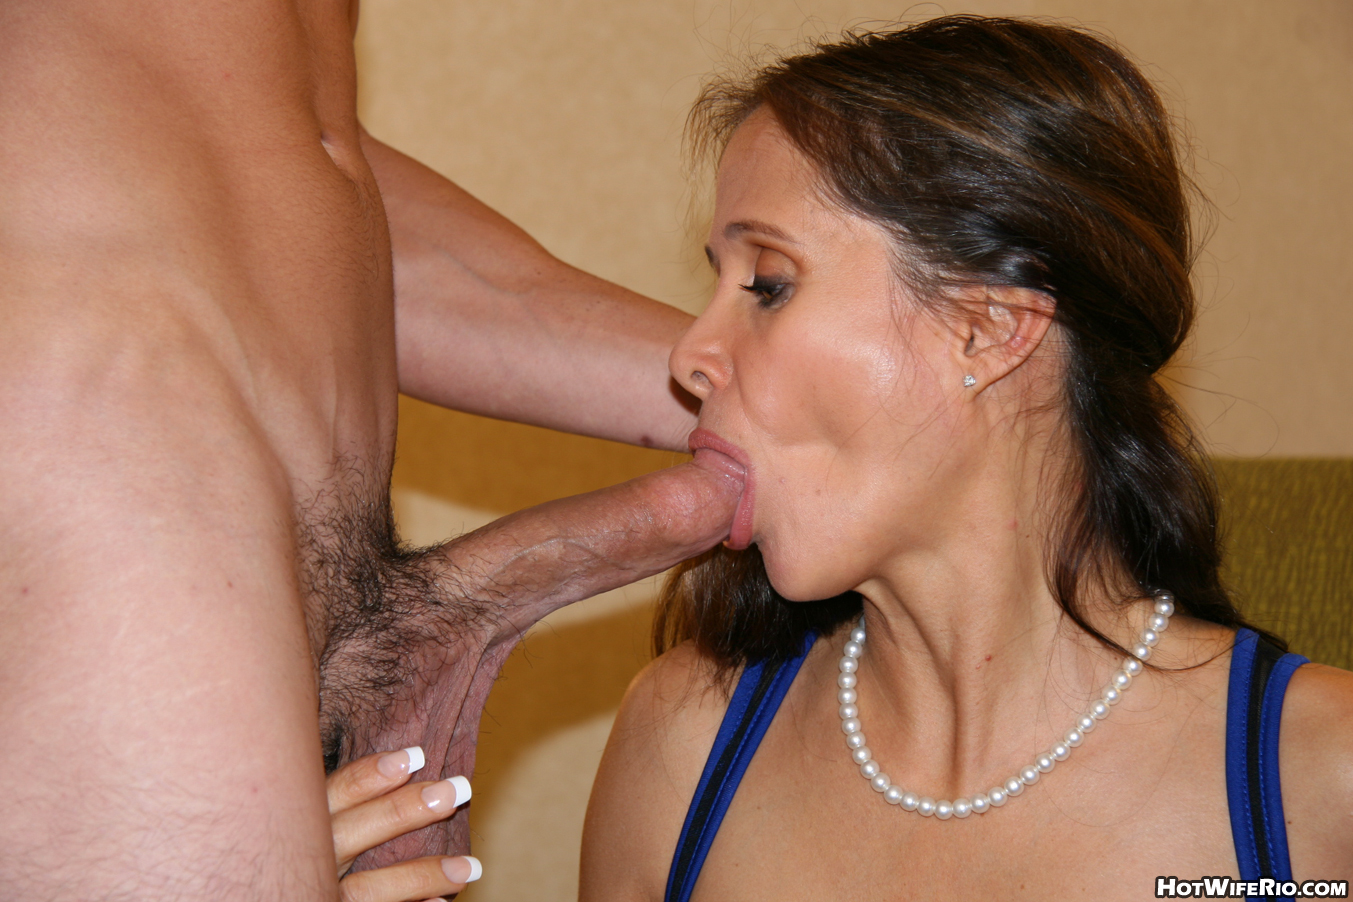 Can suggest Hot wife rio fucking pics can suggest